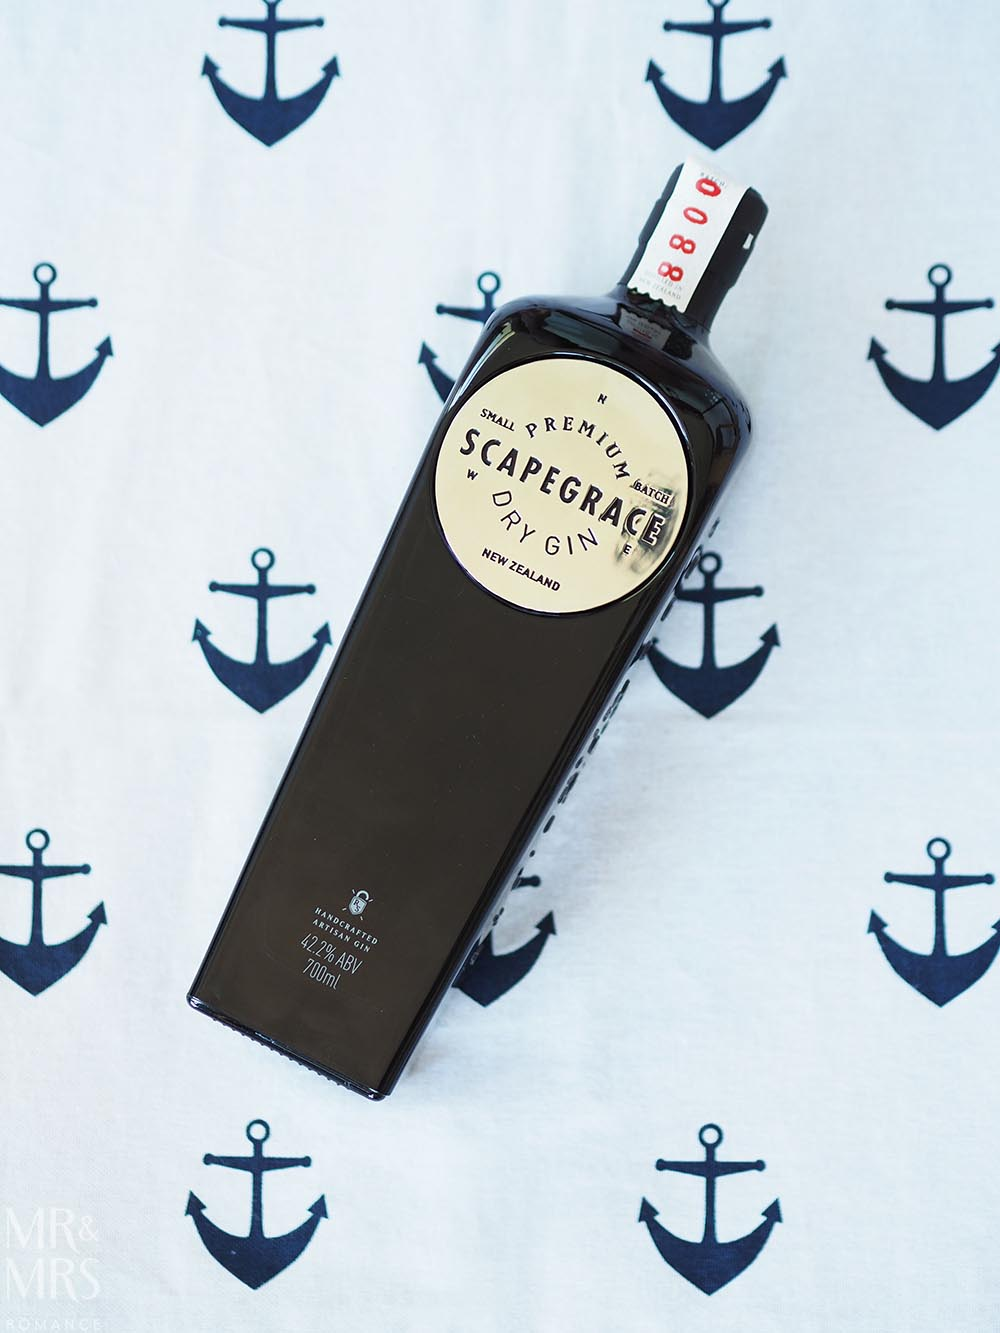 Last-minute Christmas gifts - Scapegrace gin